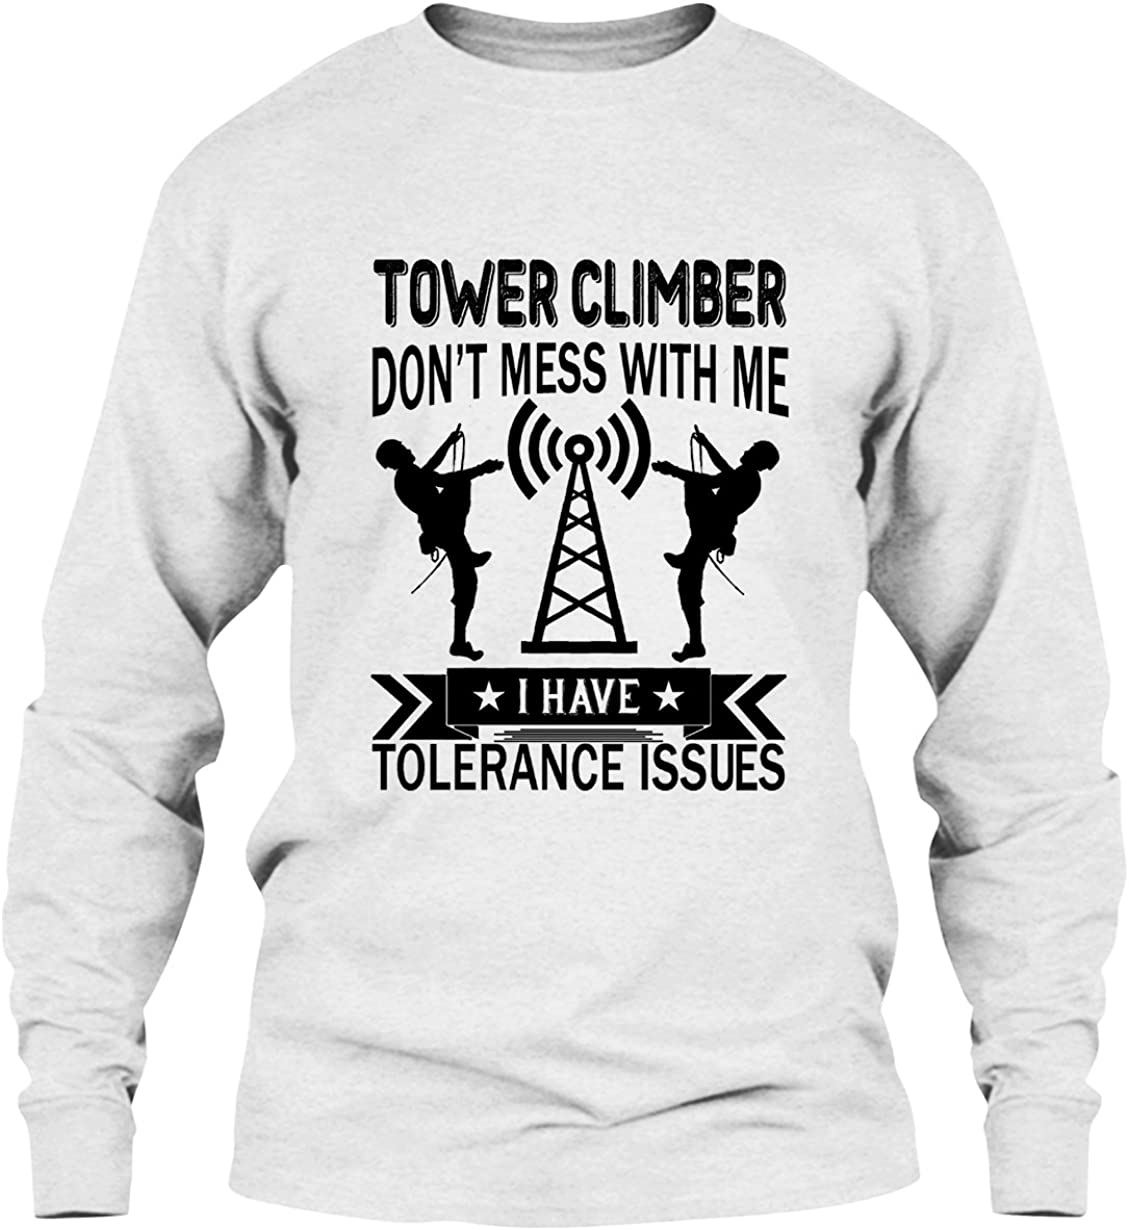 Amazon Com Ezaro Tower Climber T Shirt Don T Mess With Tower Climber Cool T Shirts Design Clothing